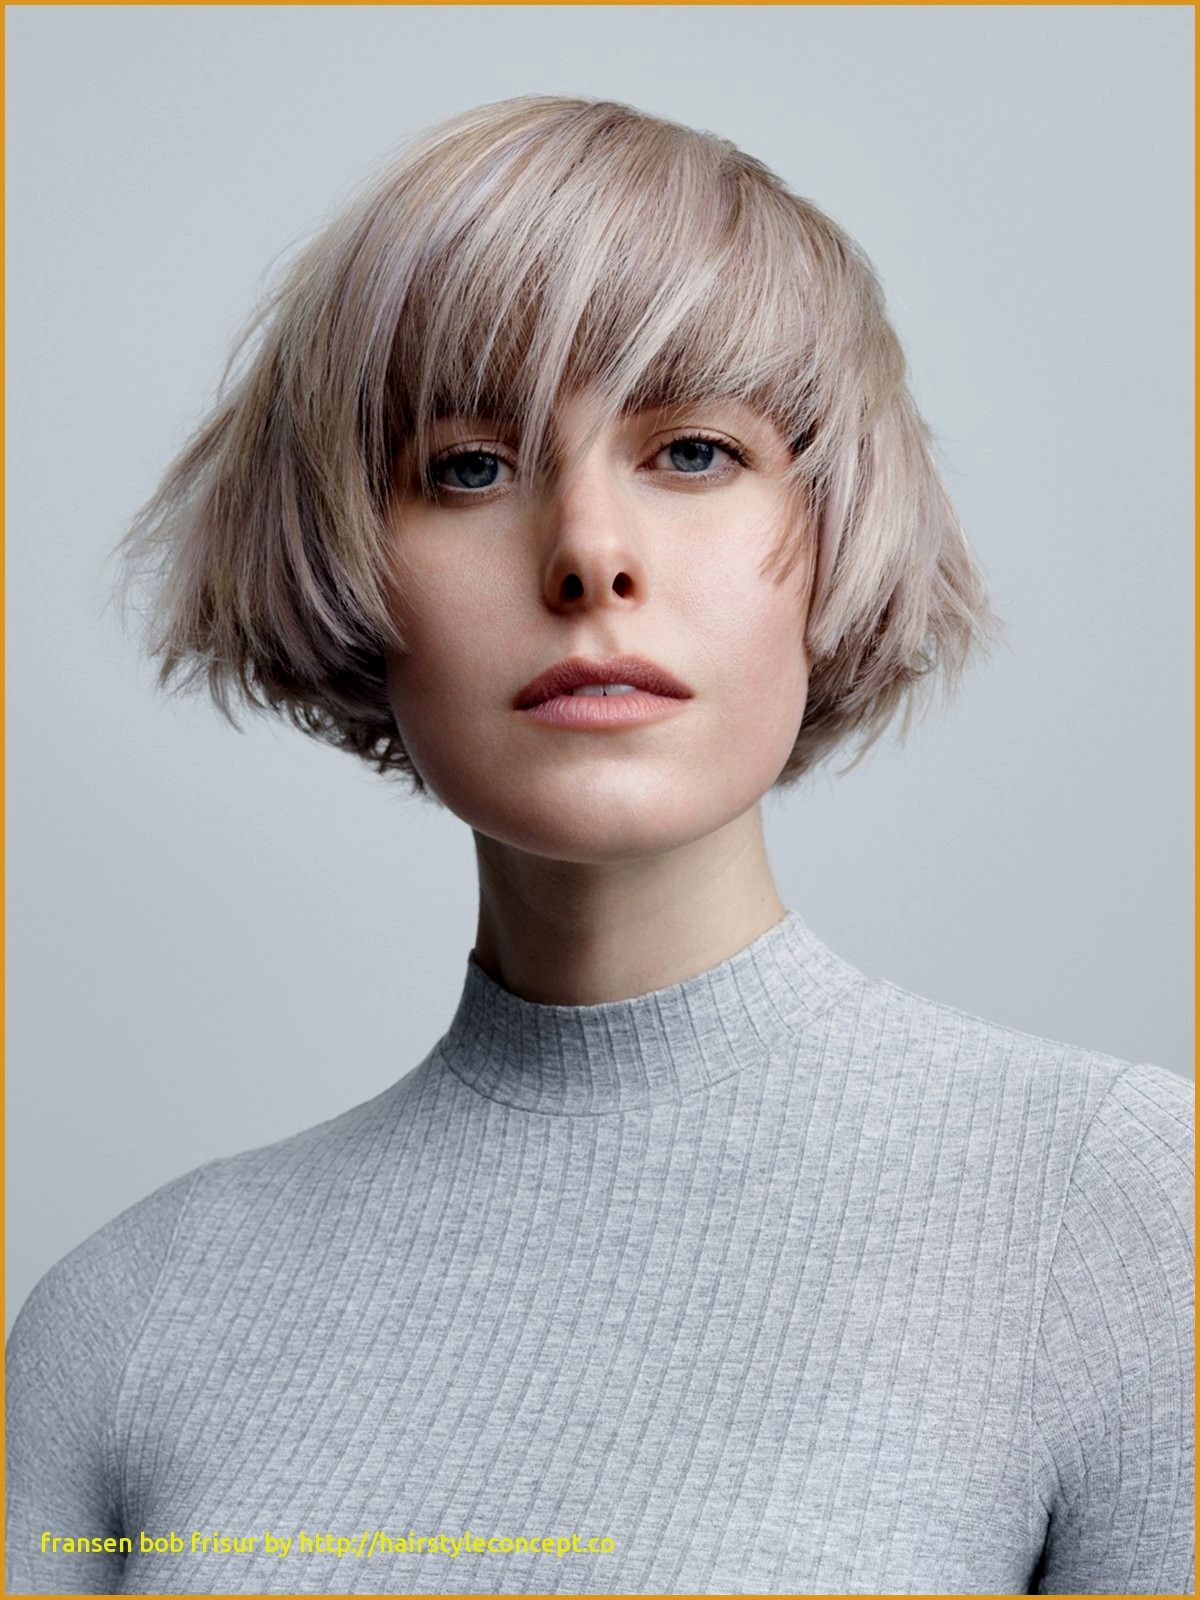 new hairstyles narrow face design-Inspirational hairstyles Narrow face gallery